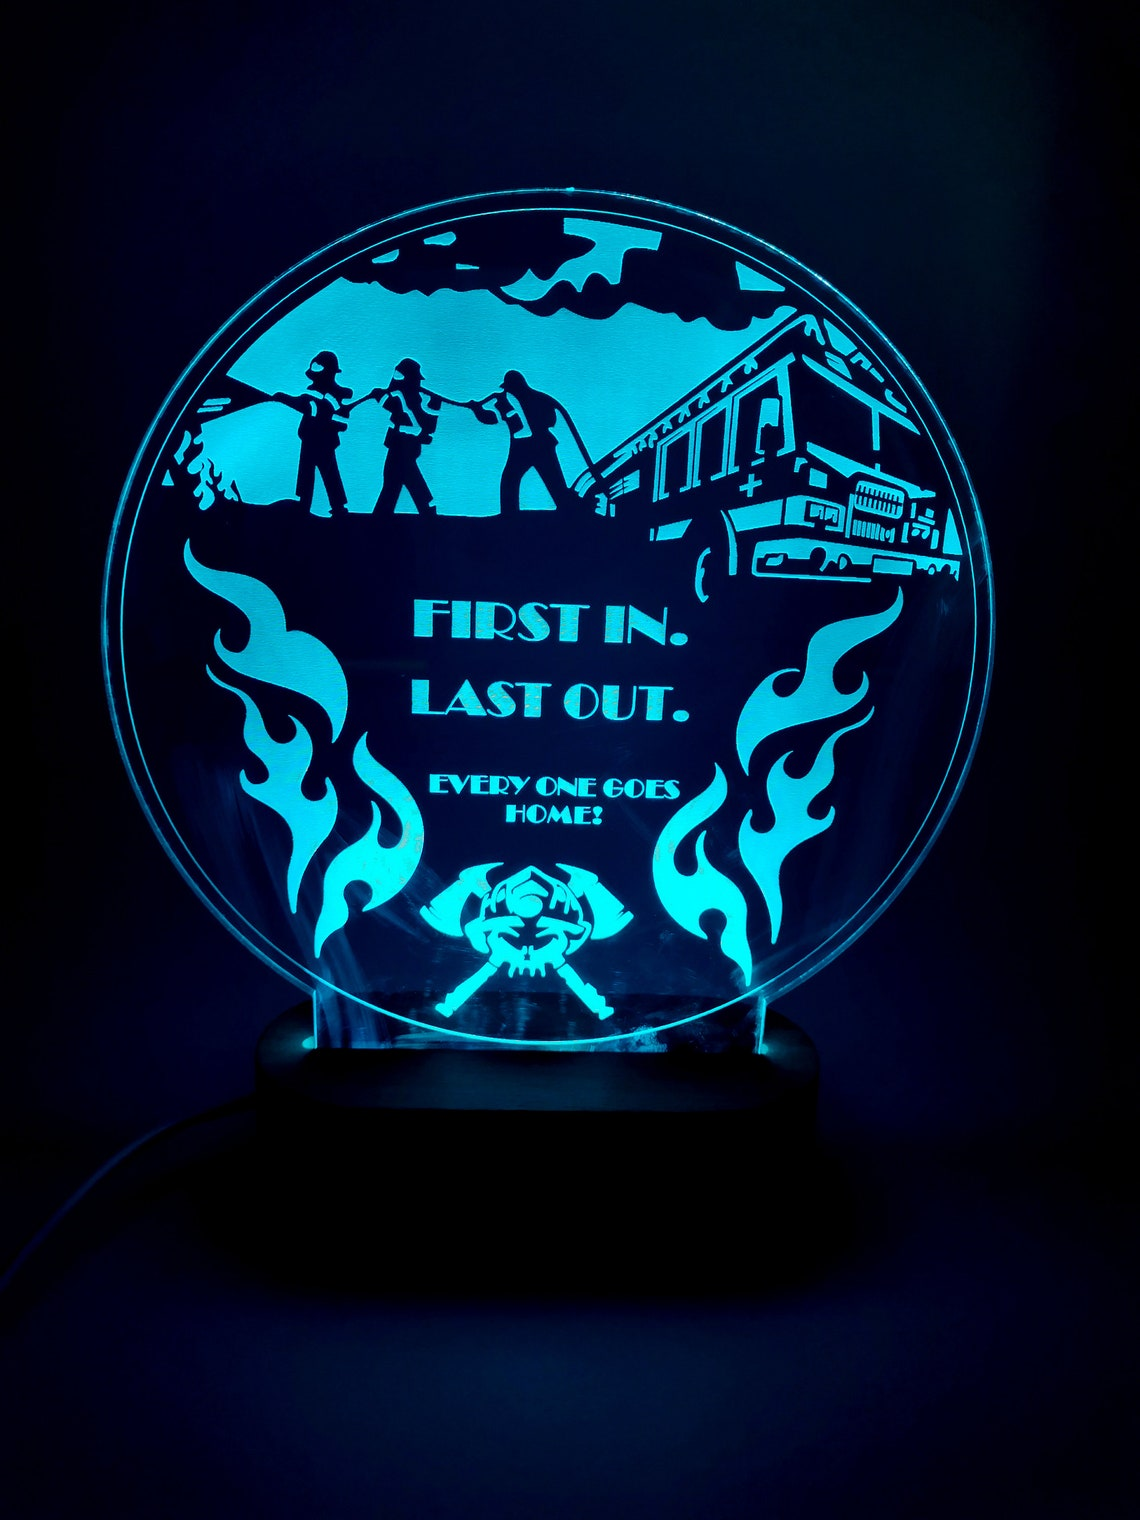 Led lamp Gift for Firefighter Personalization free Firefighter Logo Multicolored LED Desk, Table, Night Lamp - Eclairage